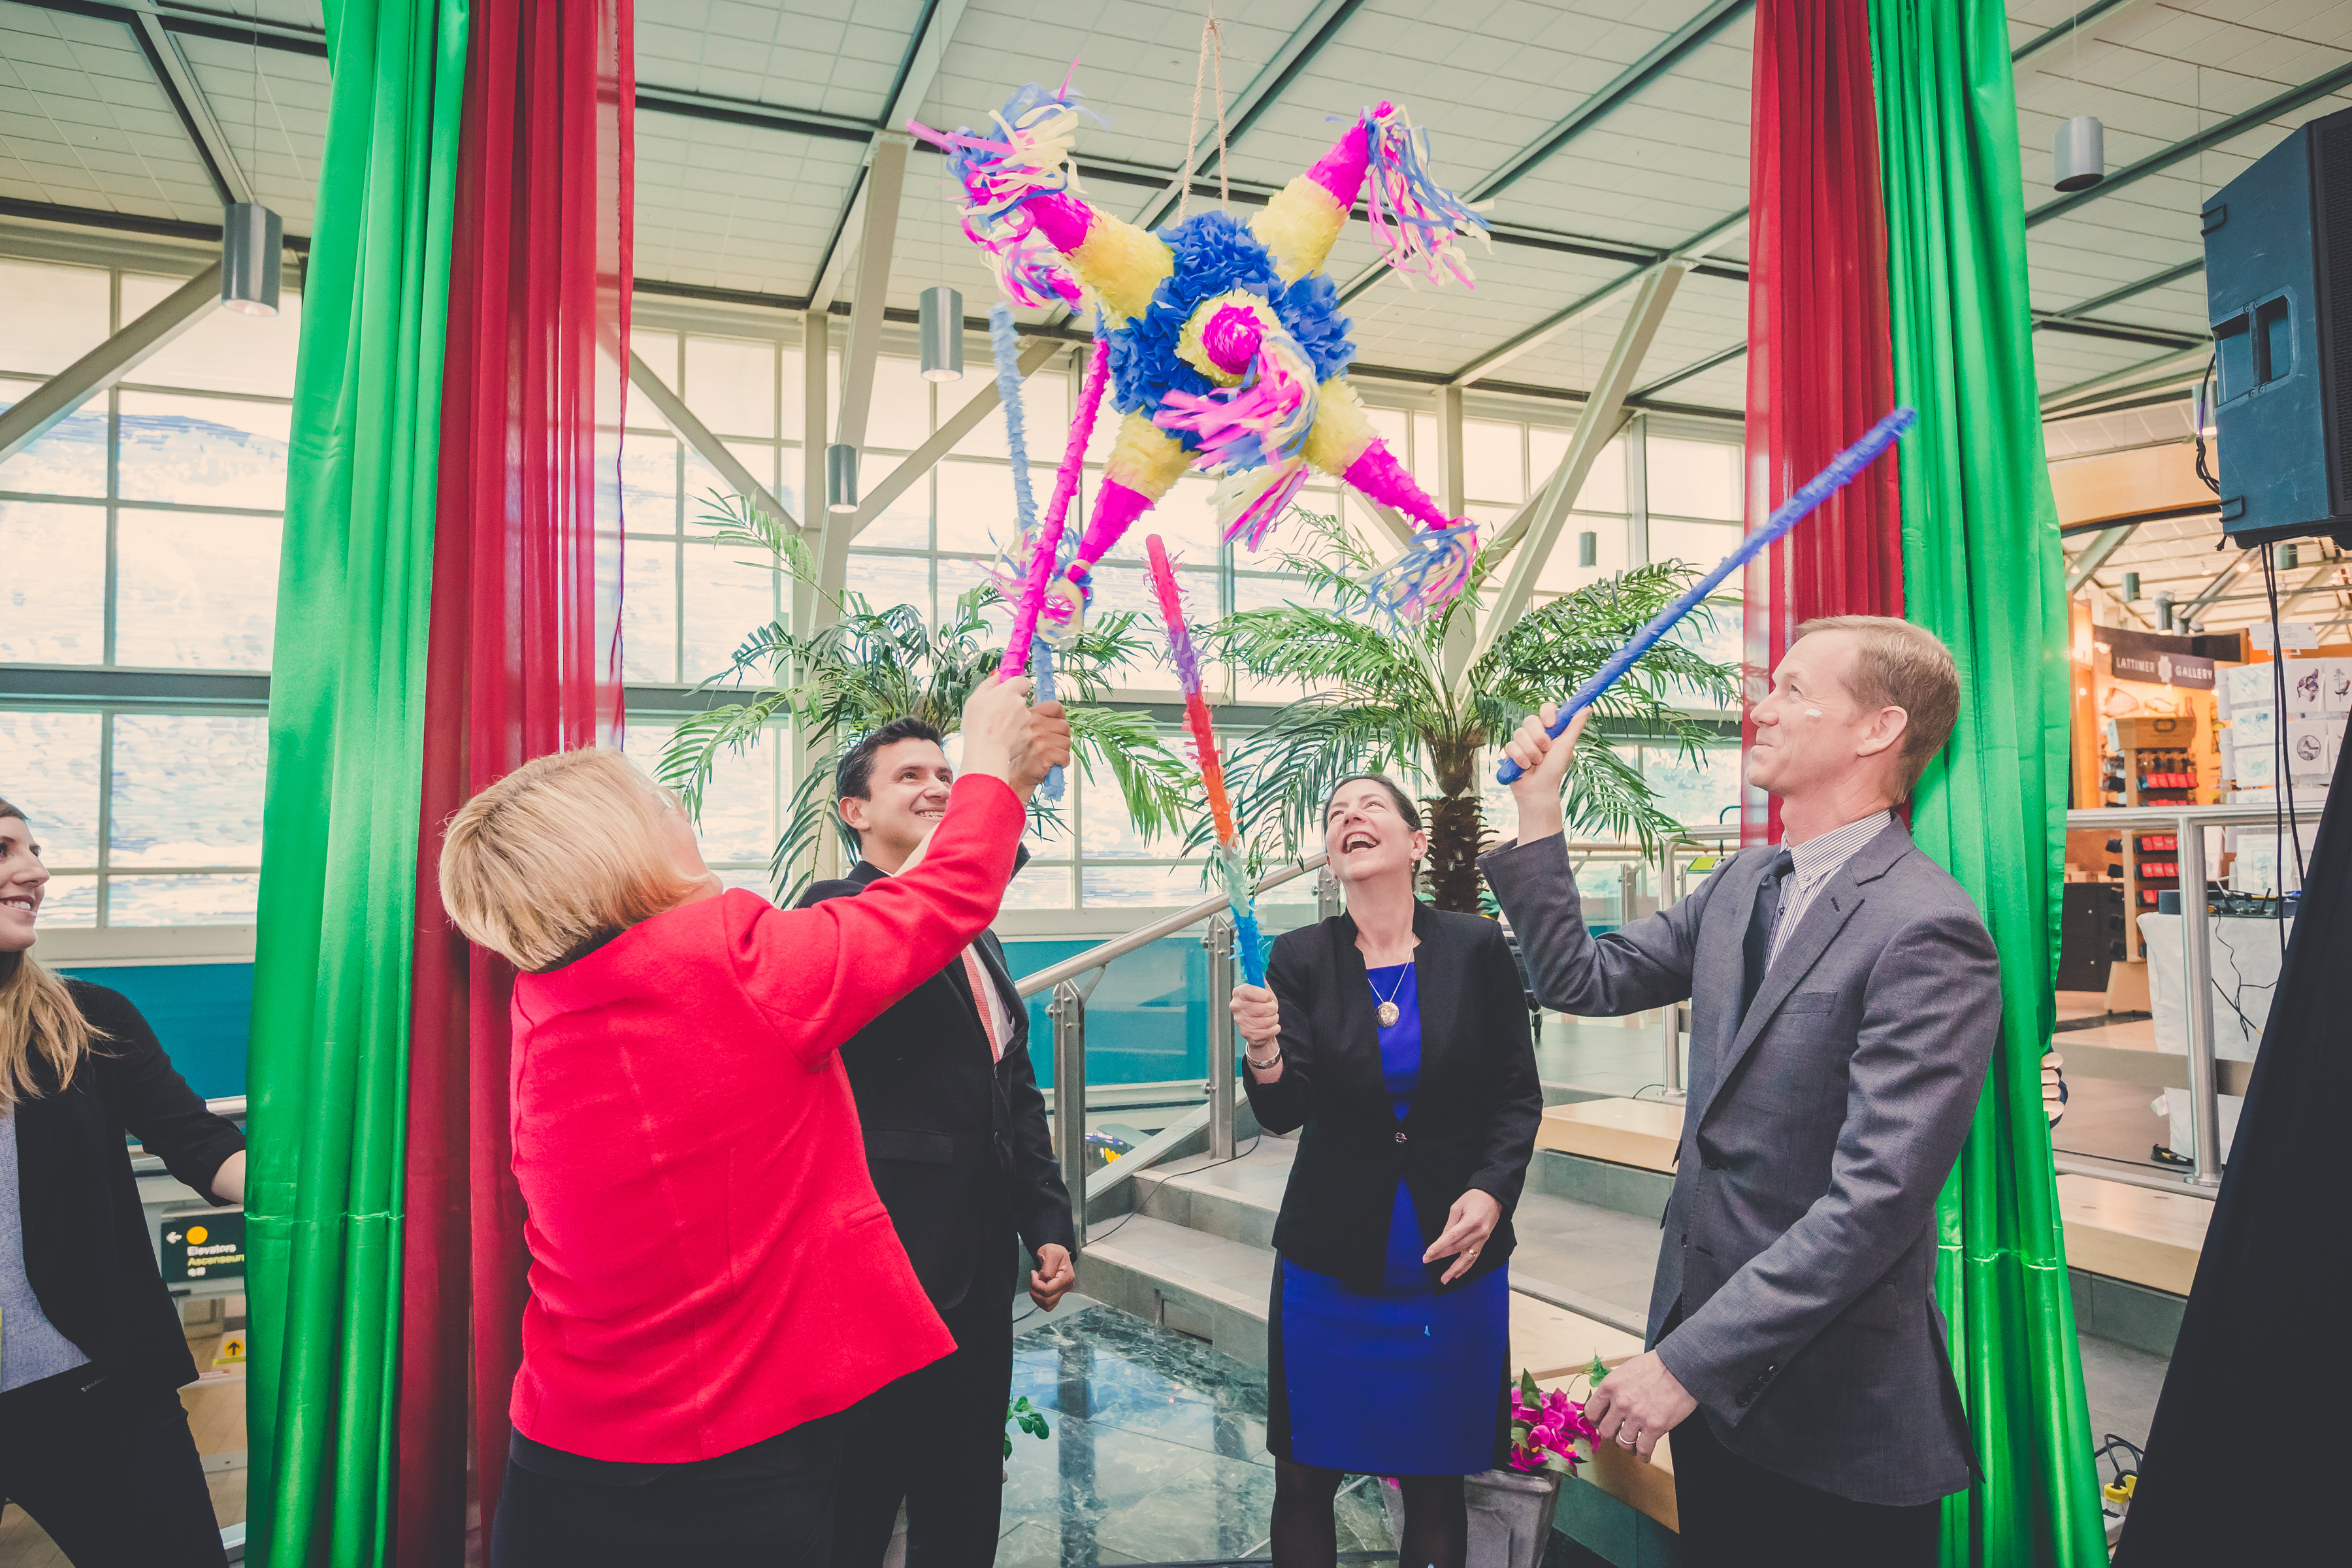 Anne Murray and VIPs celebrate Interjet inaugural with a pinata